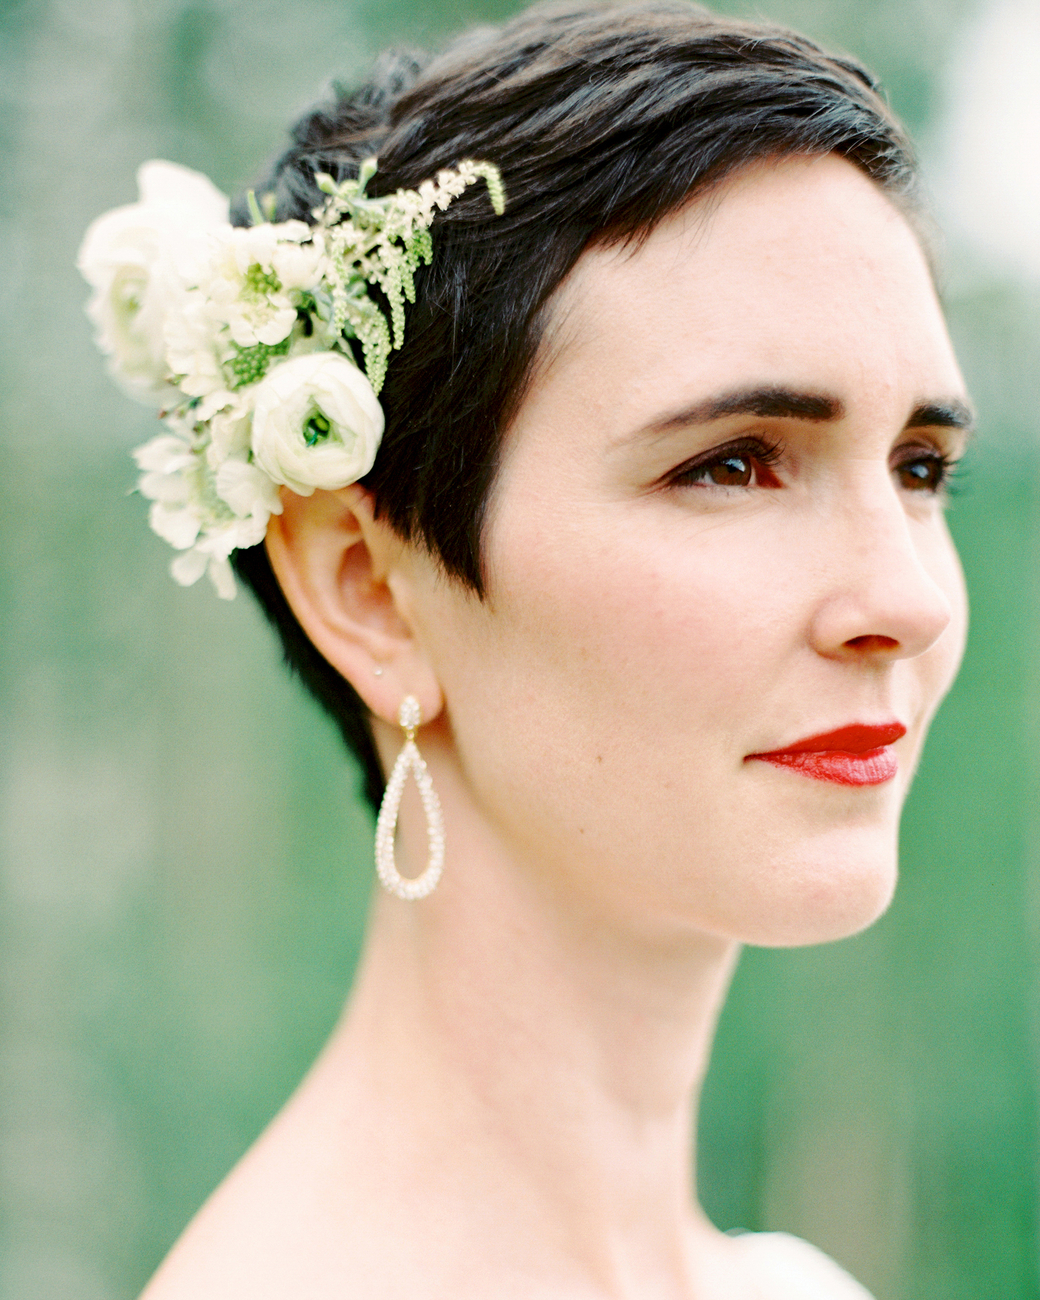 Short wedding pixie cut with flowers